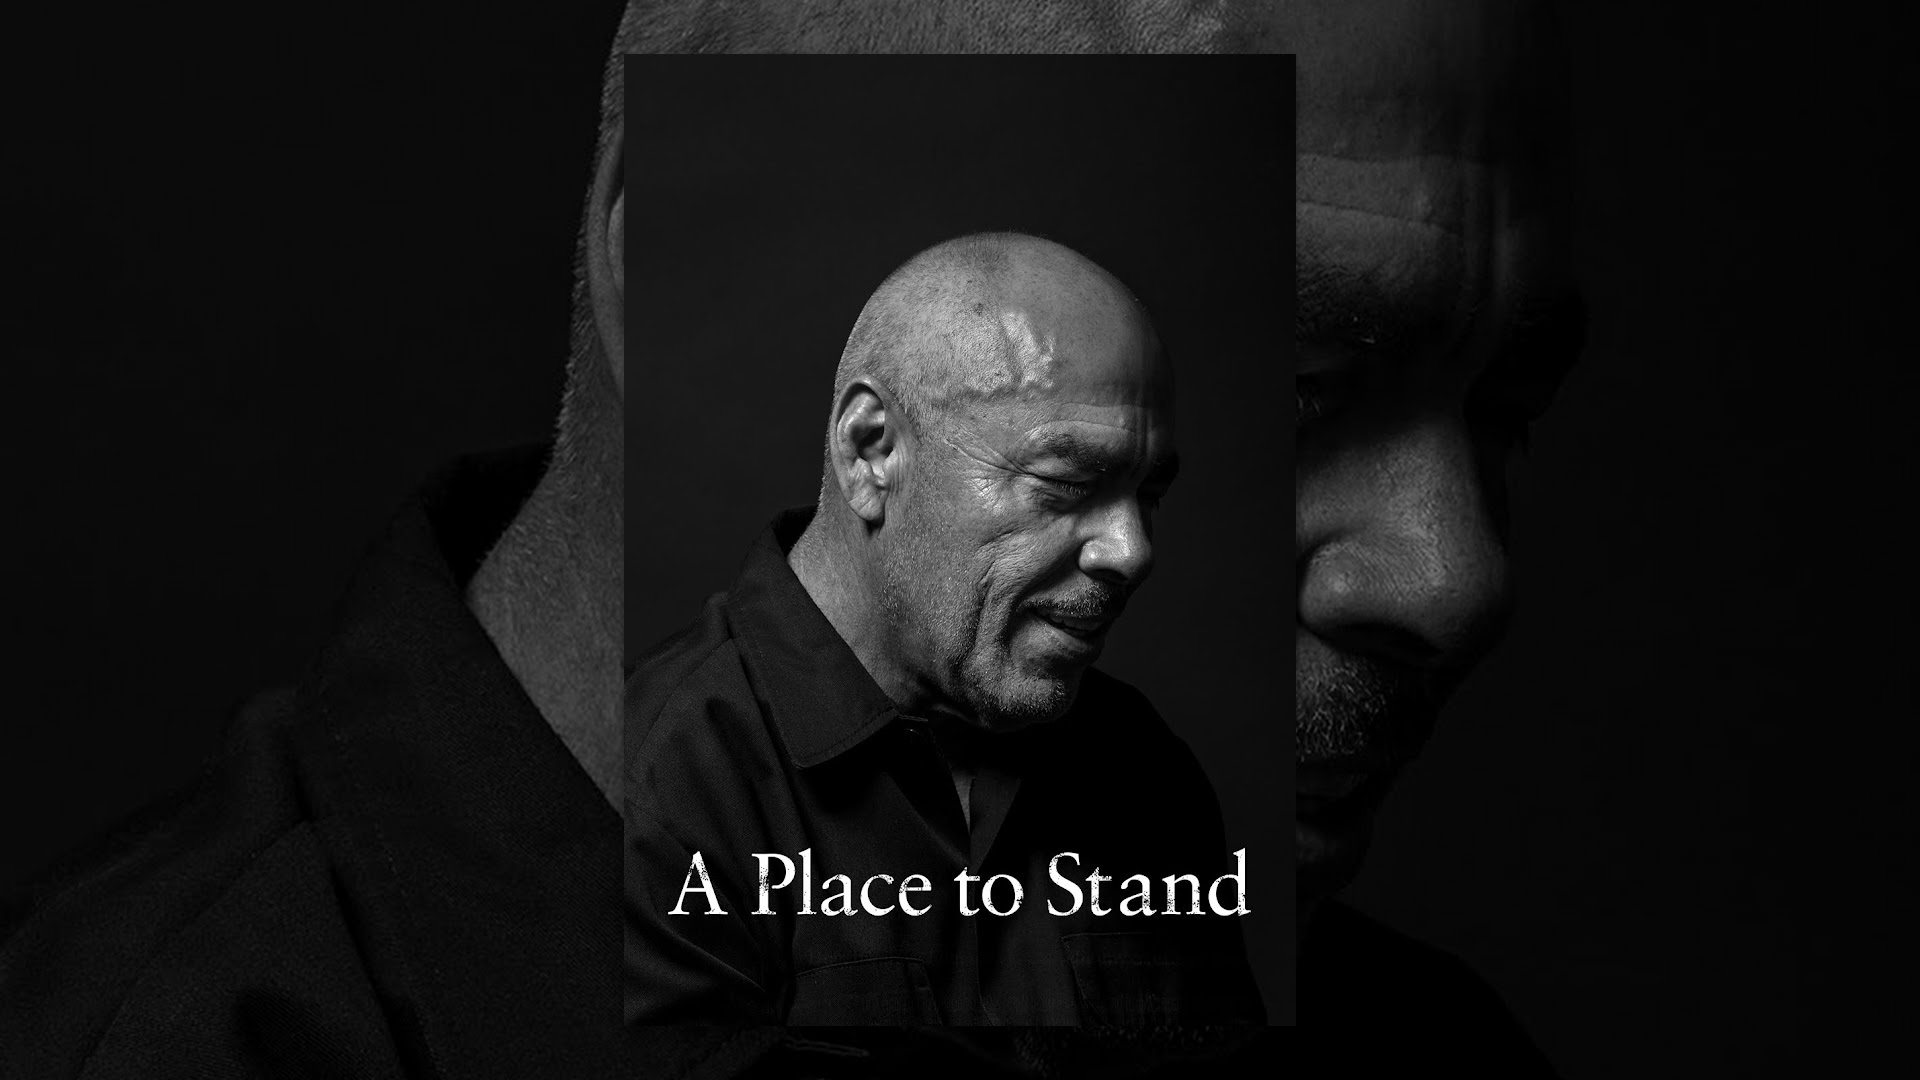 a place to stand by jimmy santiago baca Jimmy santiago baca's brilliantly received memoir, a place to stand, earned him the prestigious international prize and offered a keyhole view into the brutal personal history that shaped -- and continues to inform -- his raw, incisive voice.